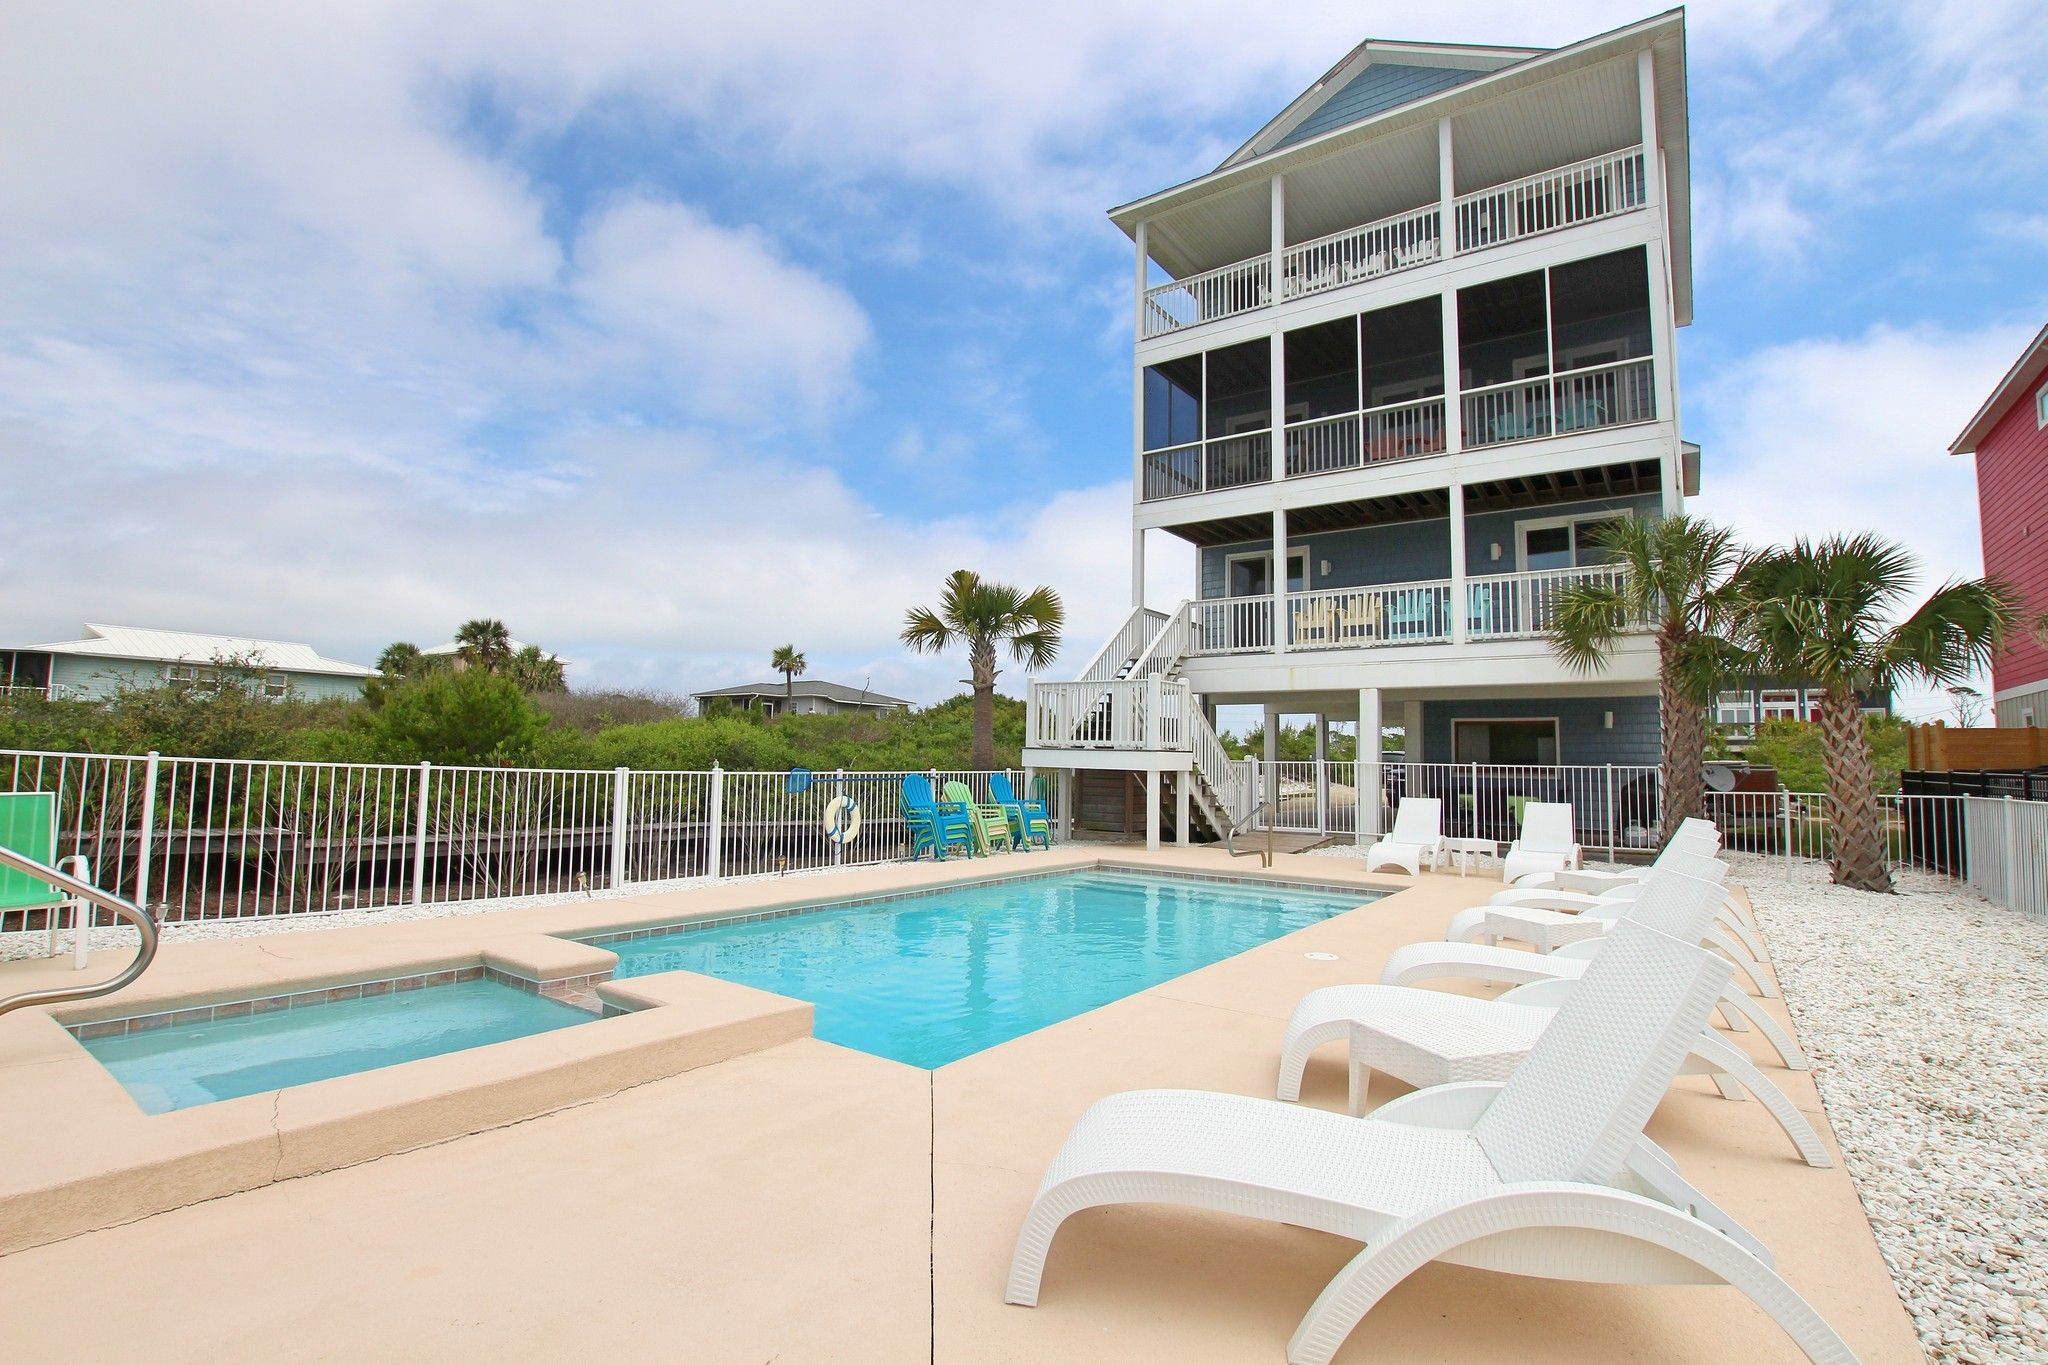 Absolute Deckadence  Is Your Next Family Vacation Rental